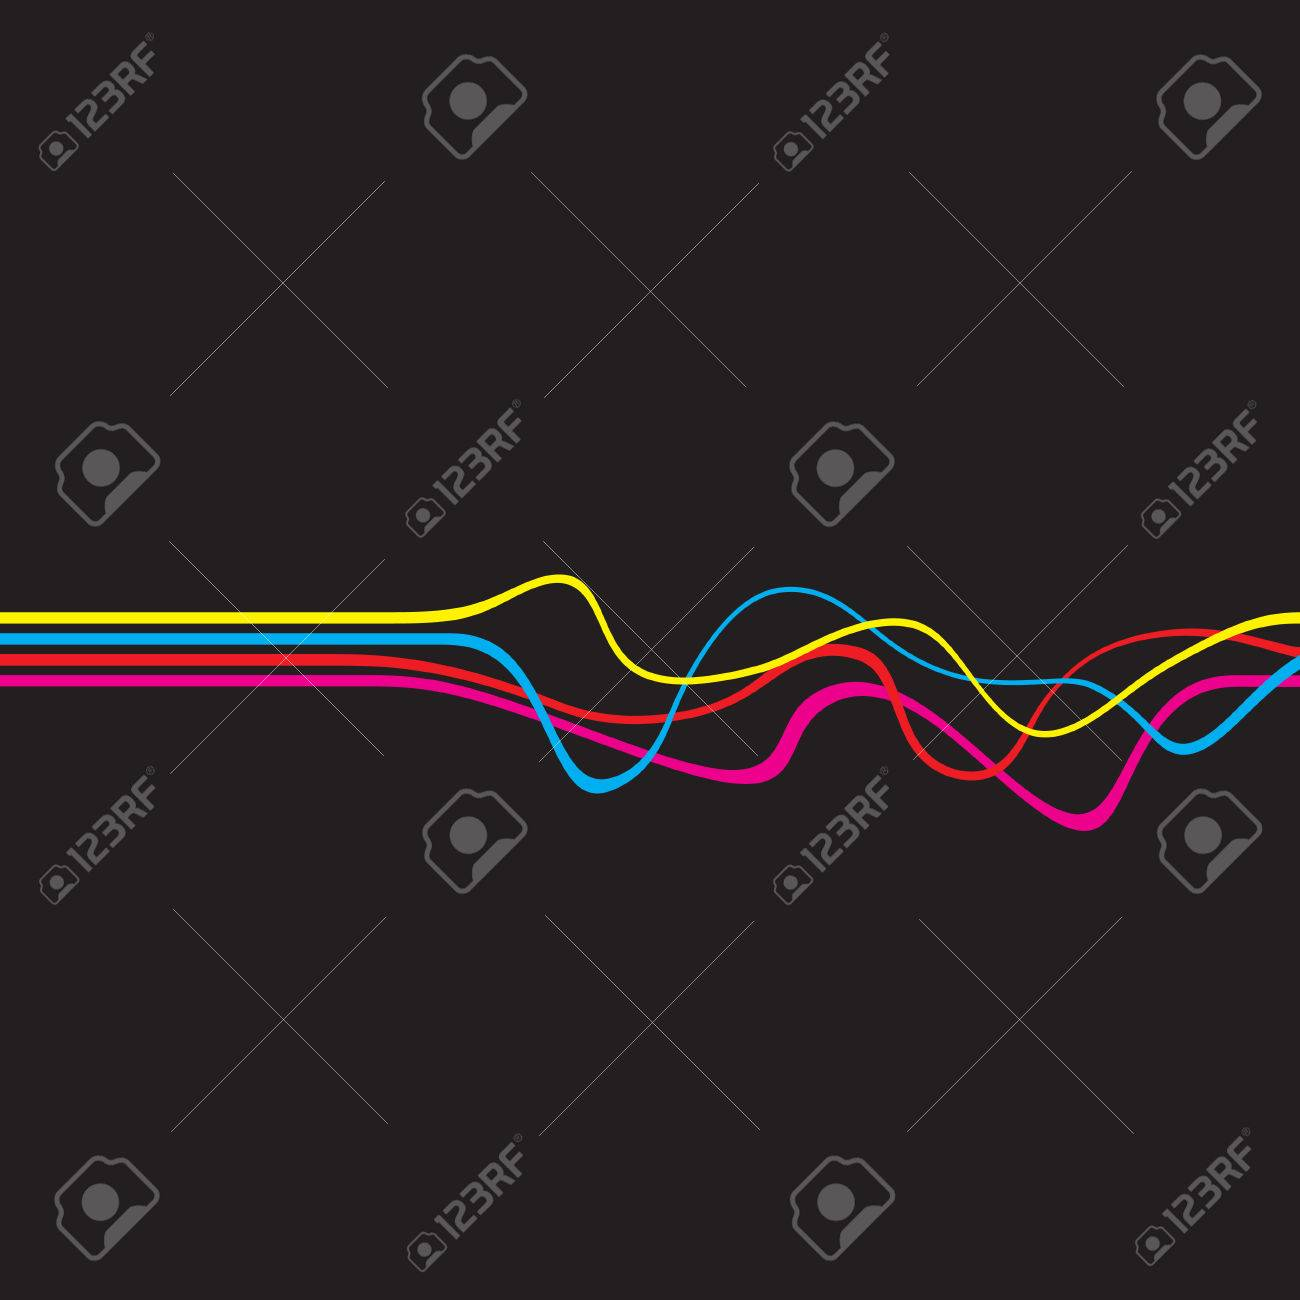 Abstract layout with wavy lines in a cmyk color scheme.  This vector image is fully editable. Stock Vector - 4463617